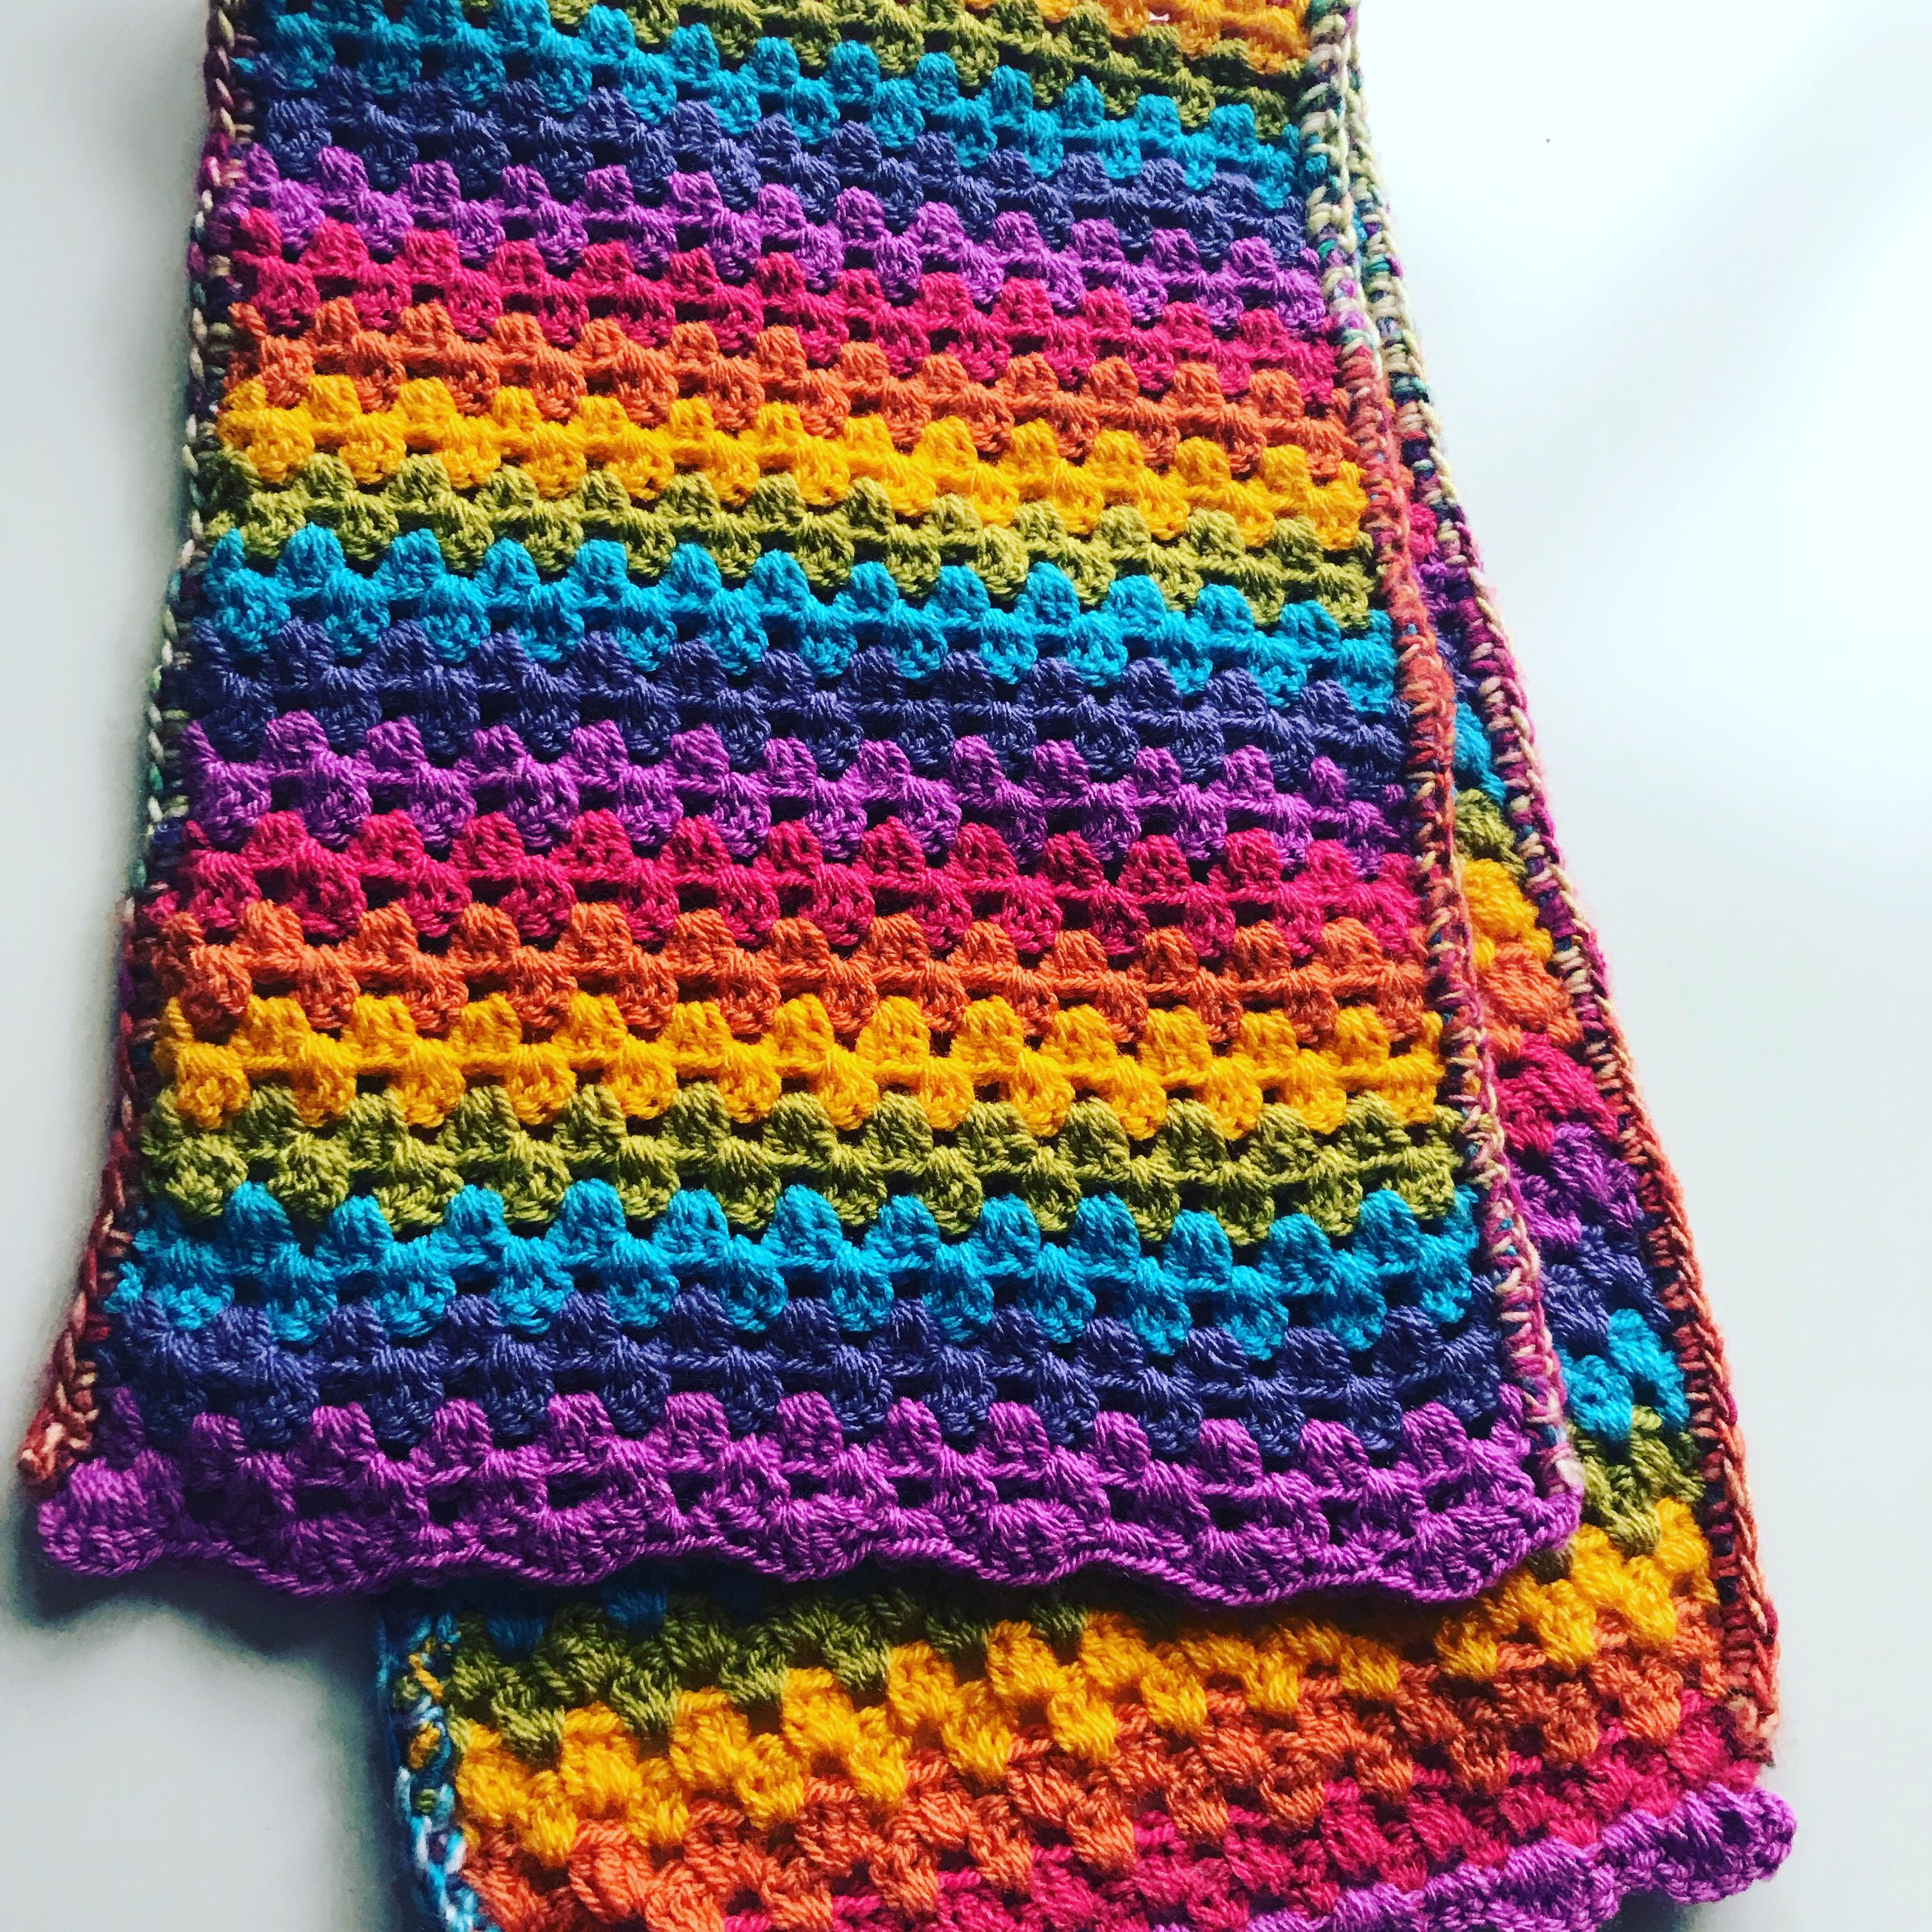 Easy Crochet Rainbow Scarf Using Attic 24 Granny Blanket Pattern Ch 40 3tr In Every Other Space Crab Stitc Easy Crochet Crotchet Patterns Blanket Pattern